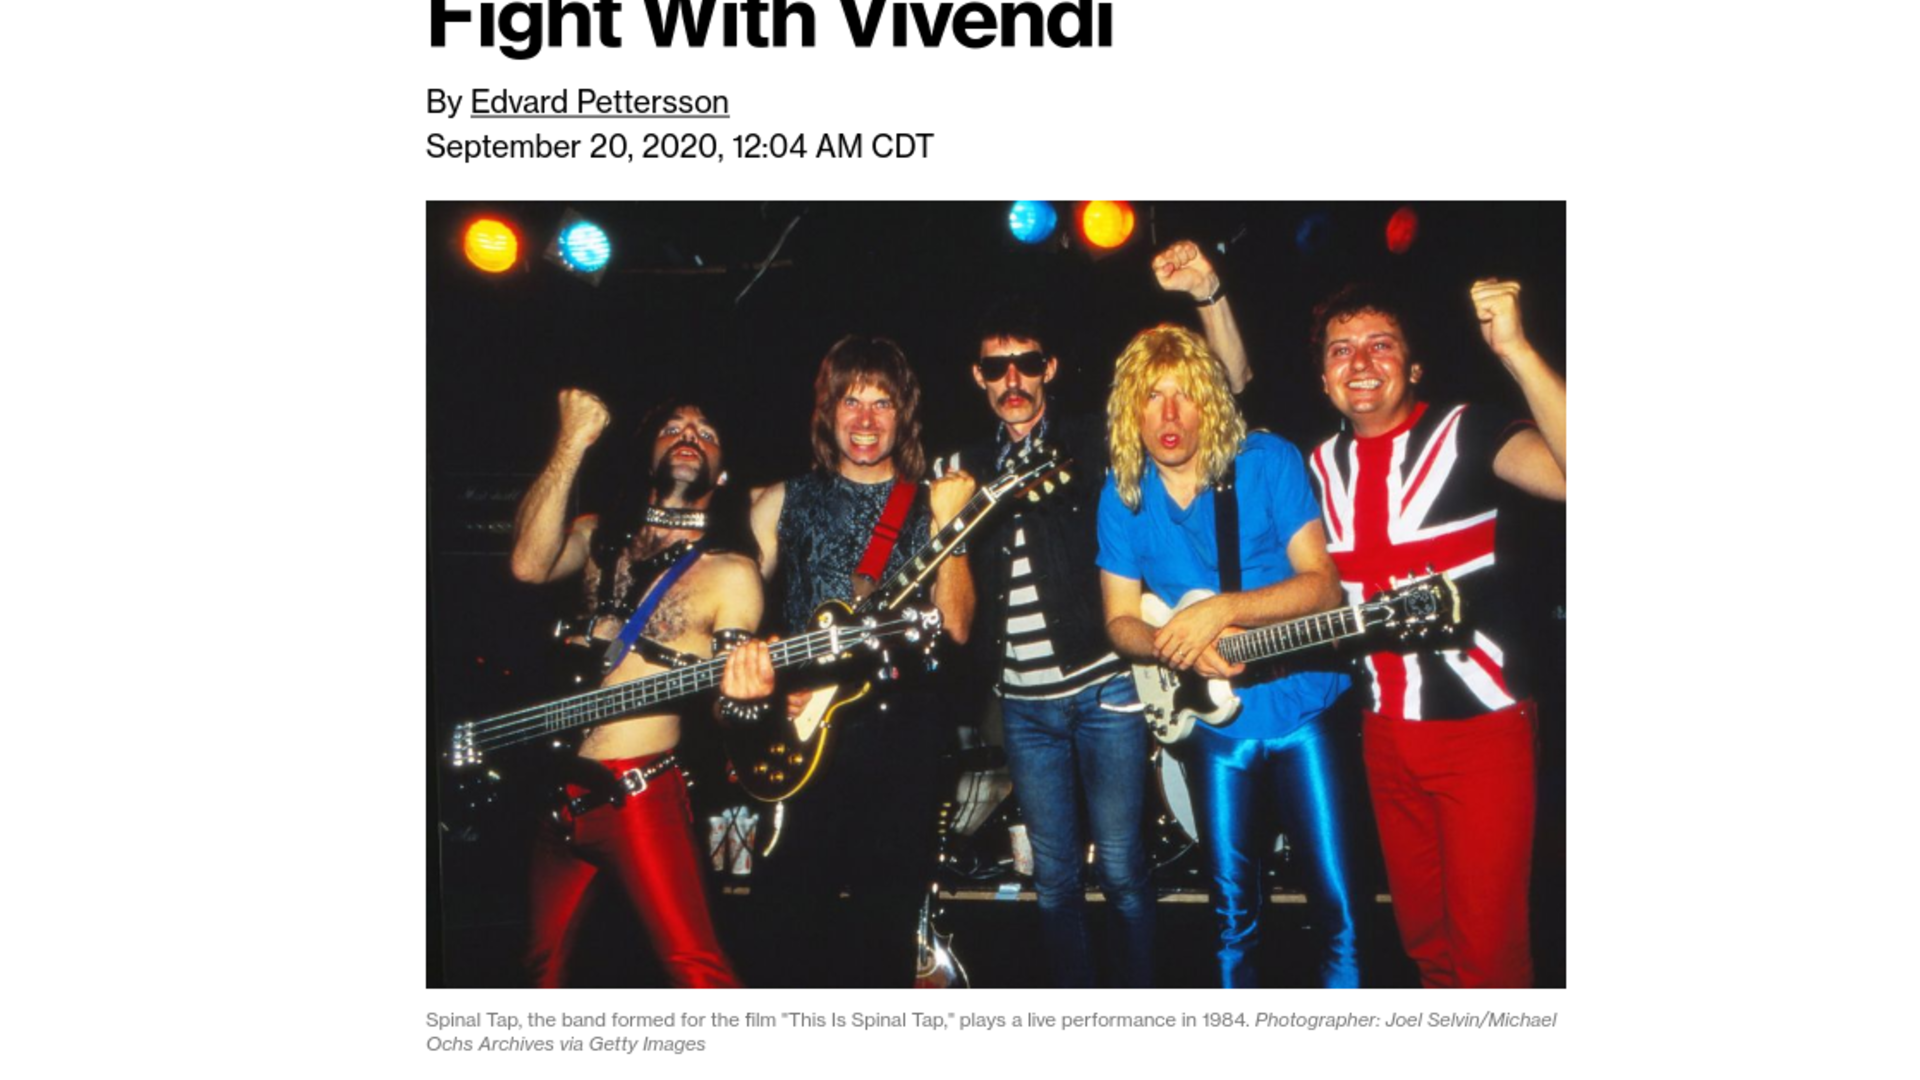 Fairness Rocks News 'Spinal Tap' Creators Settle Royalties Fight With Vivendi